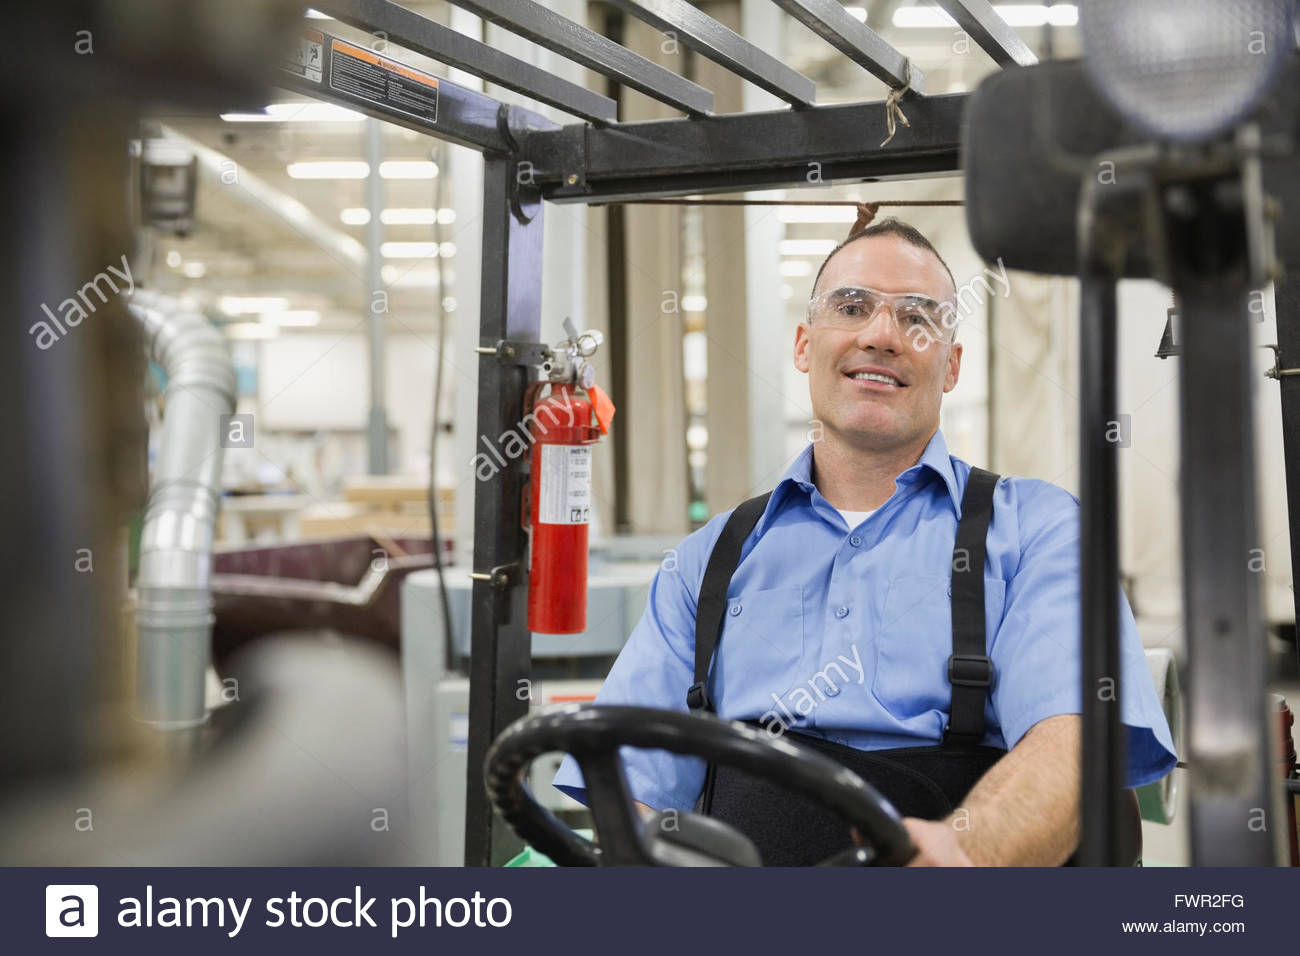 Portrait of worker sitting in forklift - Stock Image